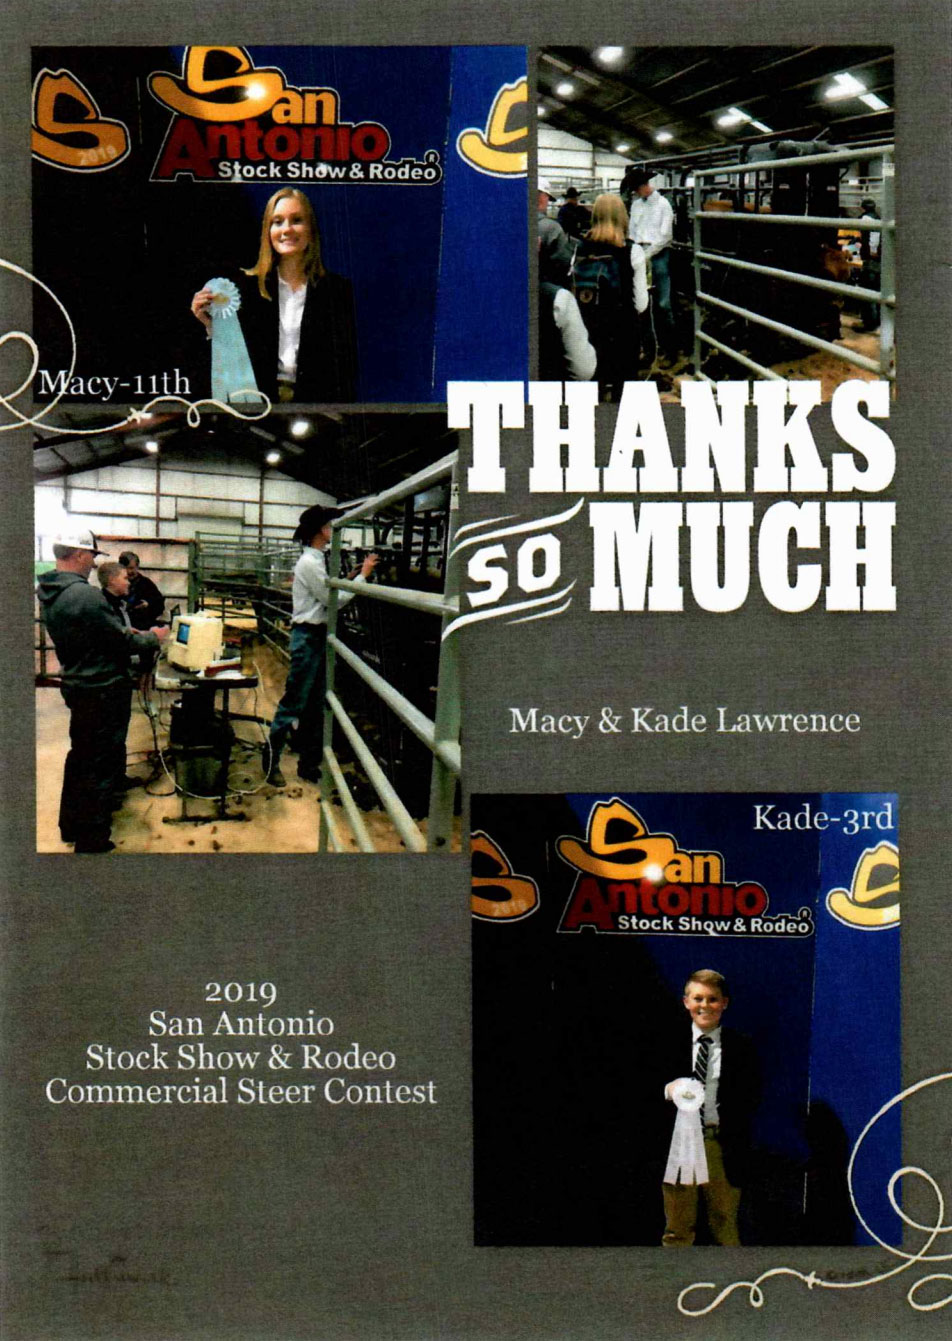 KRW Kares: Giving Back - Stock Show Scholarship